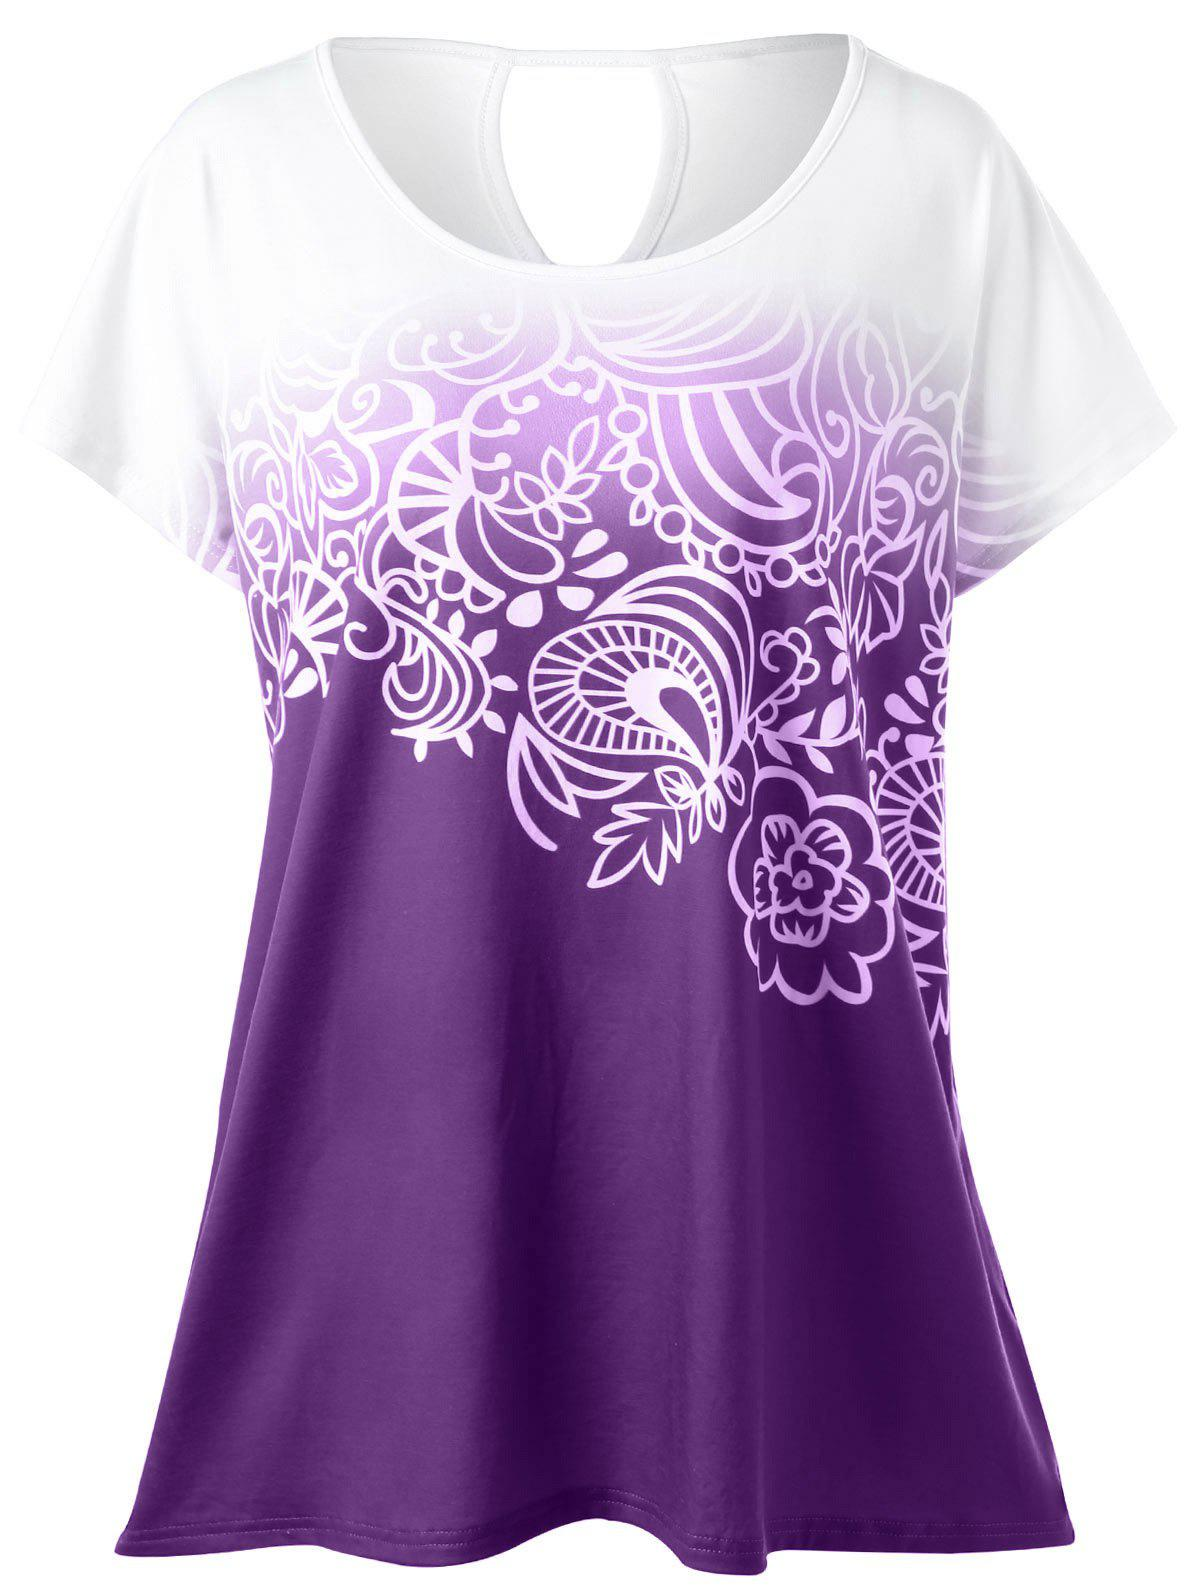 Plus Size Floral Ombre T-Shirt - PURPLE 5XL